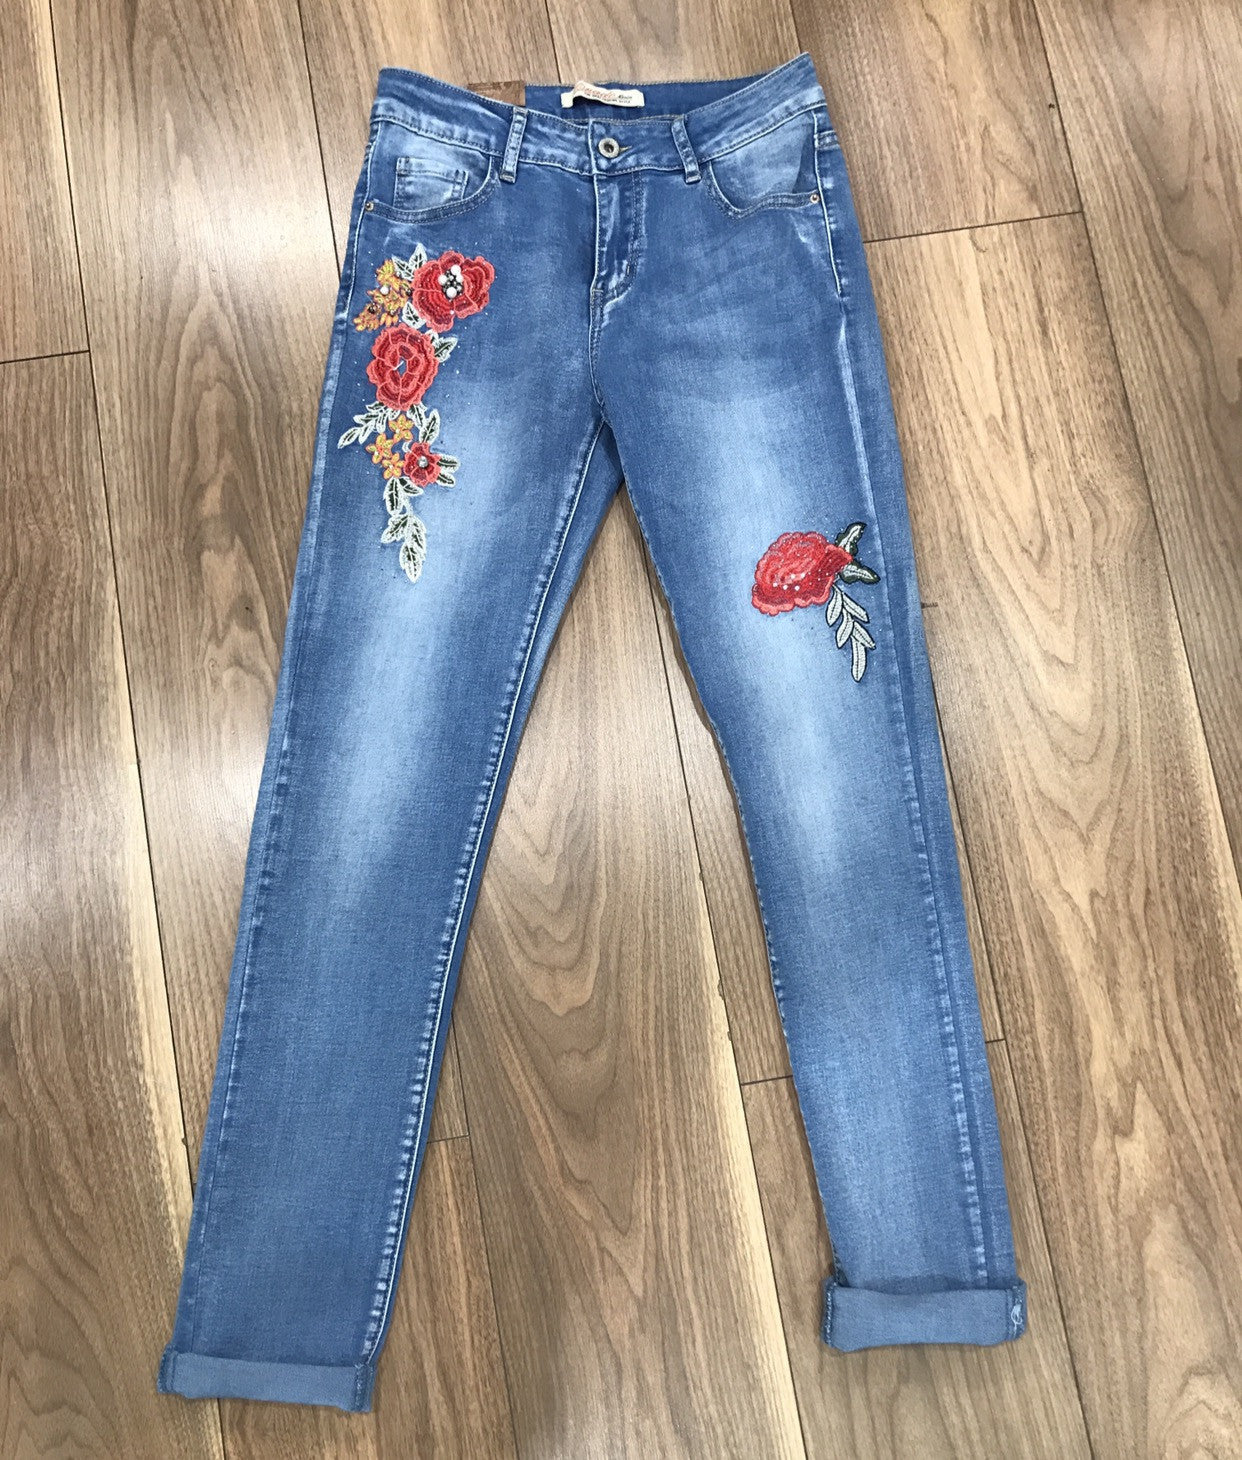 Rose Jeans